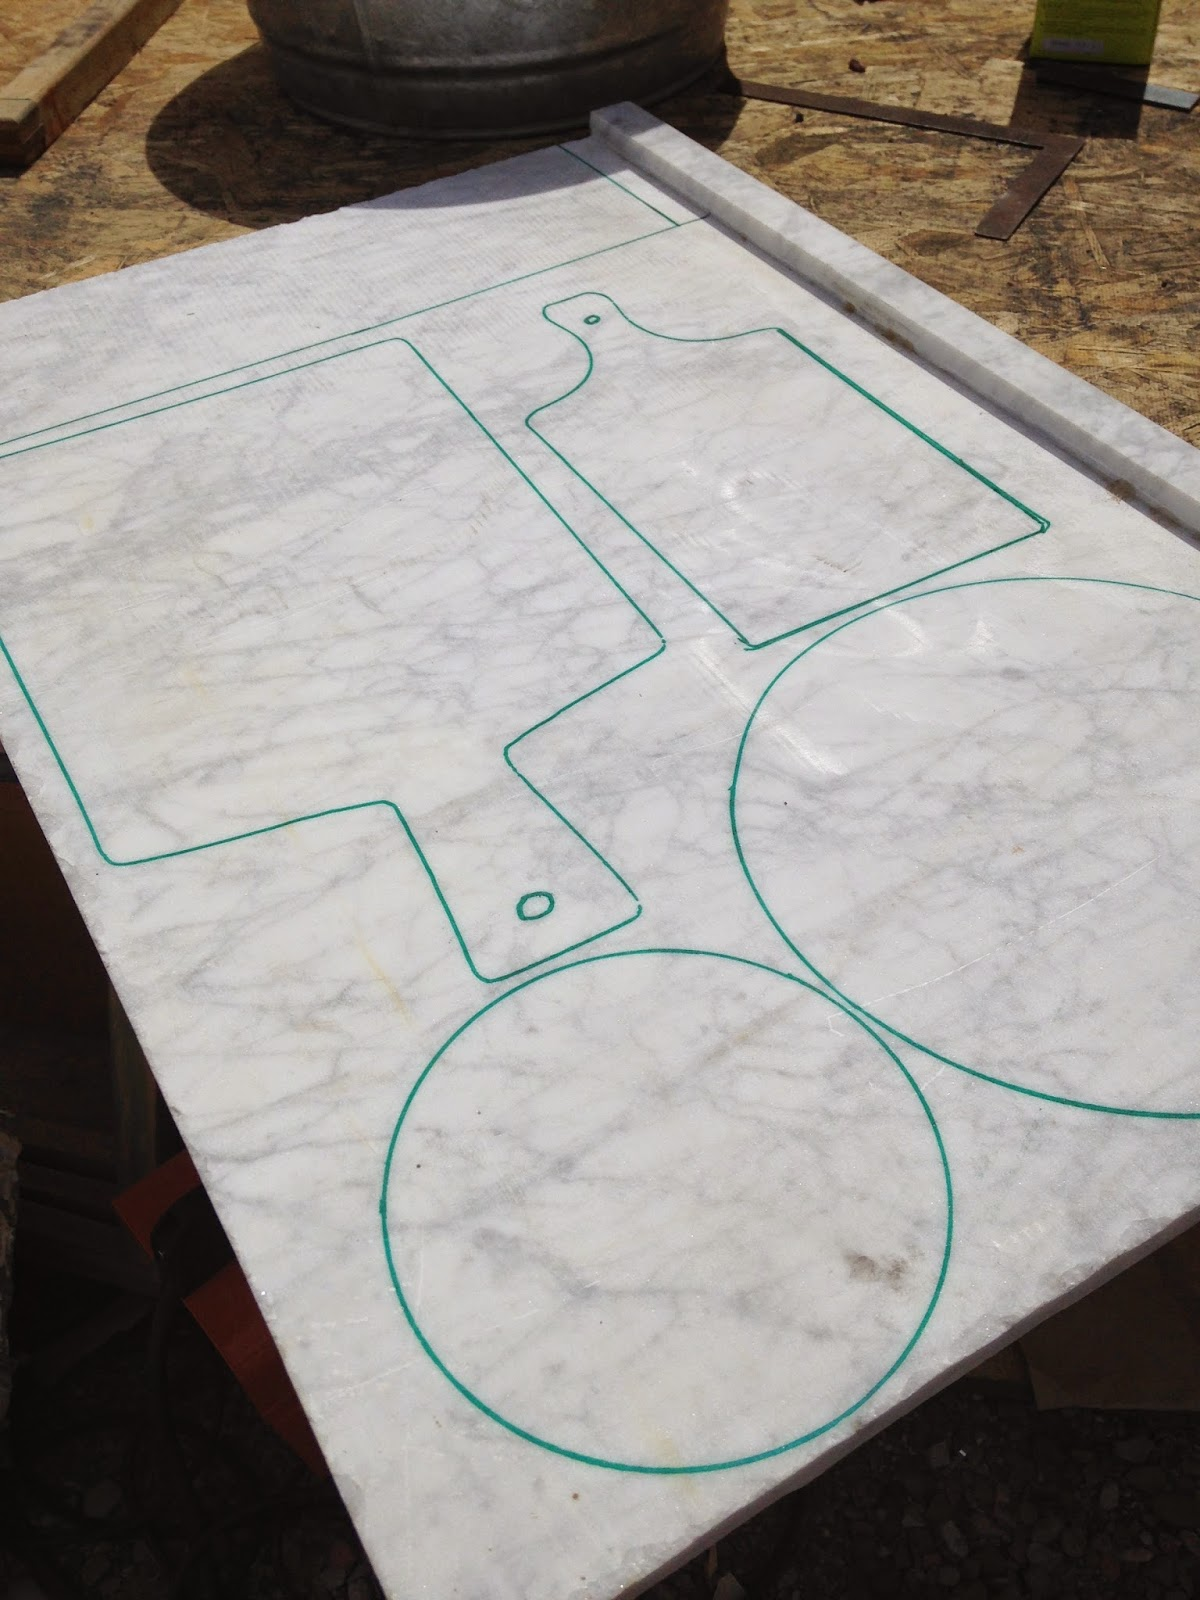 I Traced A Few Patterns On The Marble Using Diffe Sized Bowls And Cutting Boards That Already Had